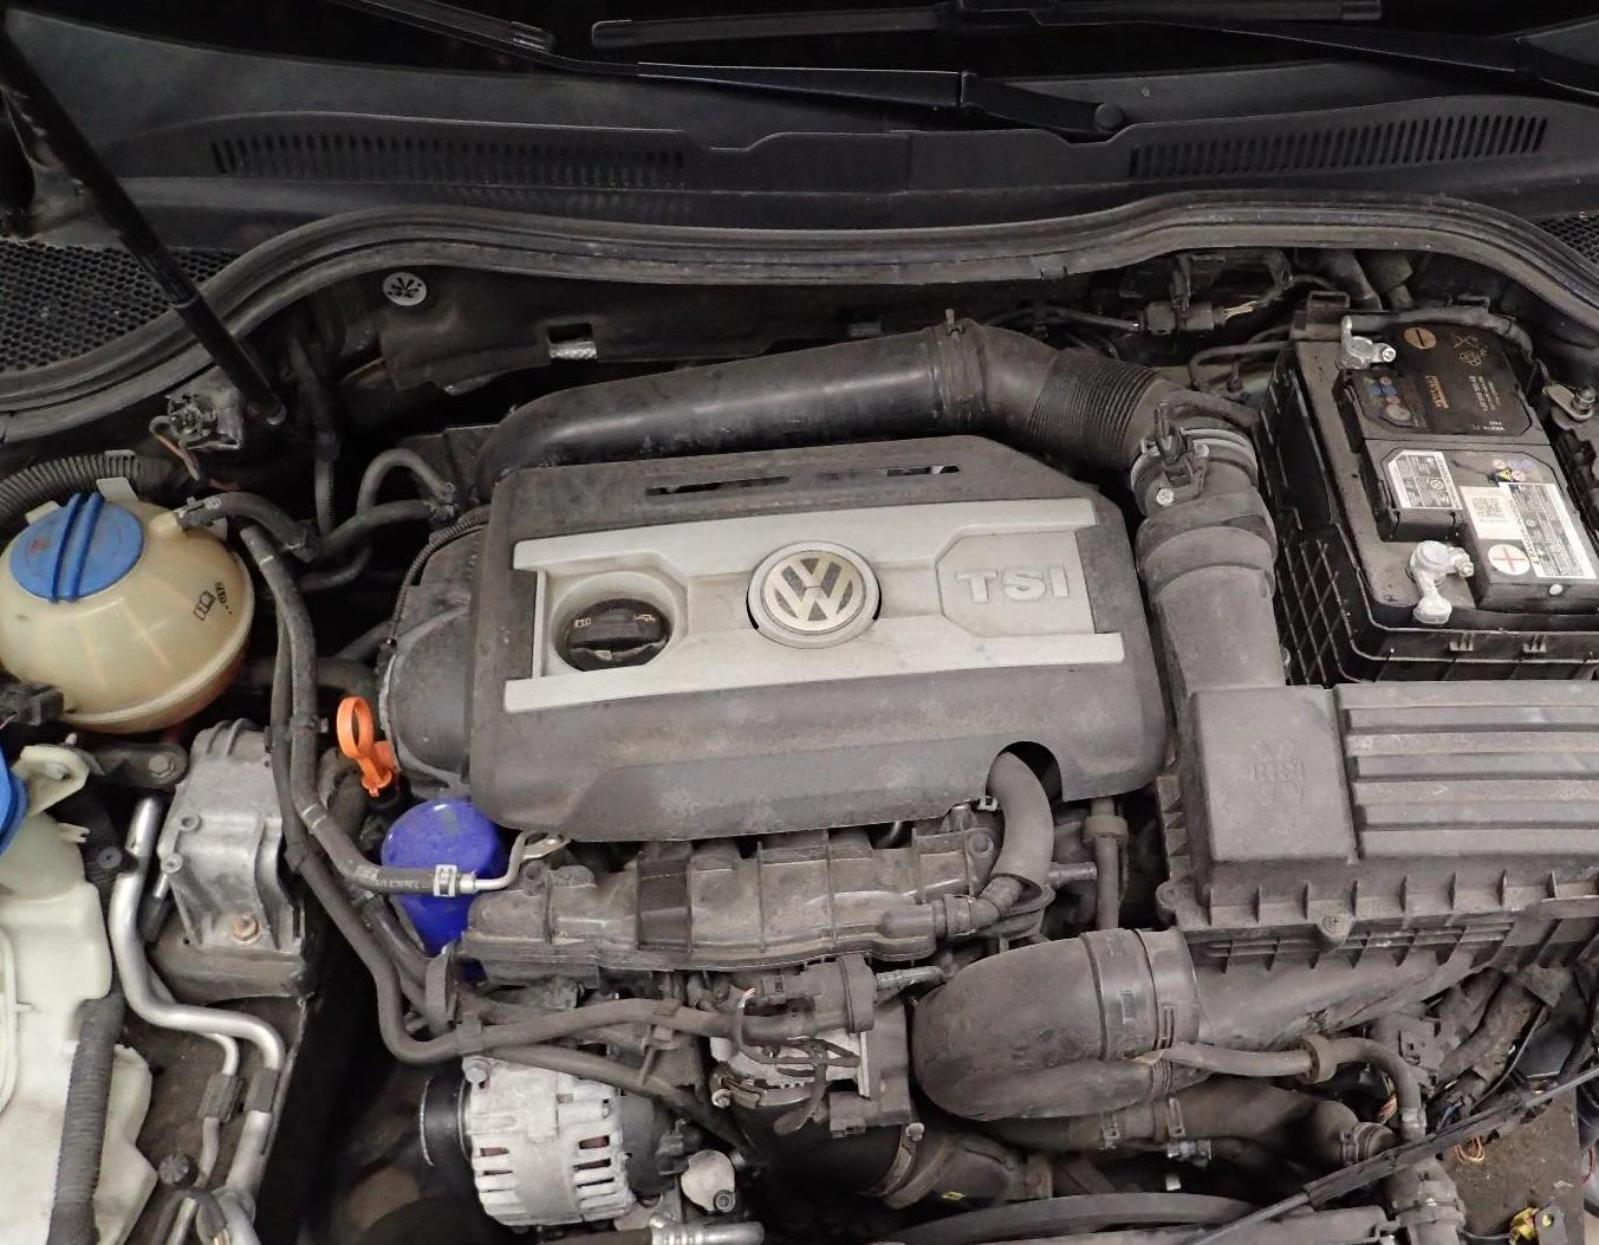 I have a 2011 VW CC 2.0T. I can not locate the Crankshaft Position Sensor on my car.